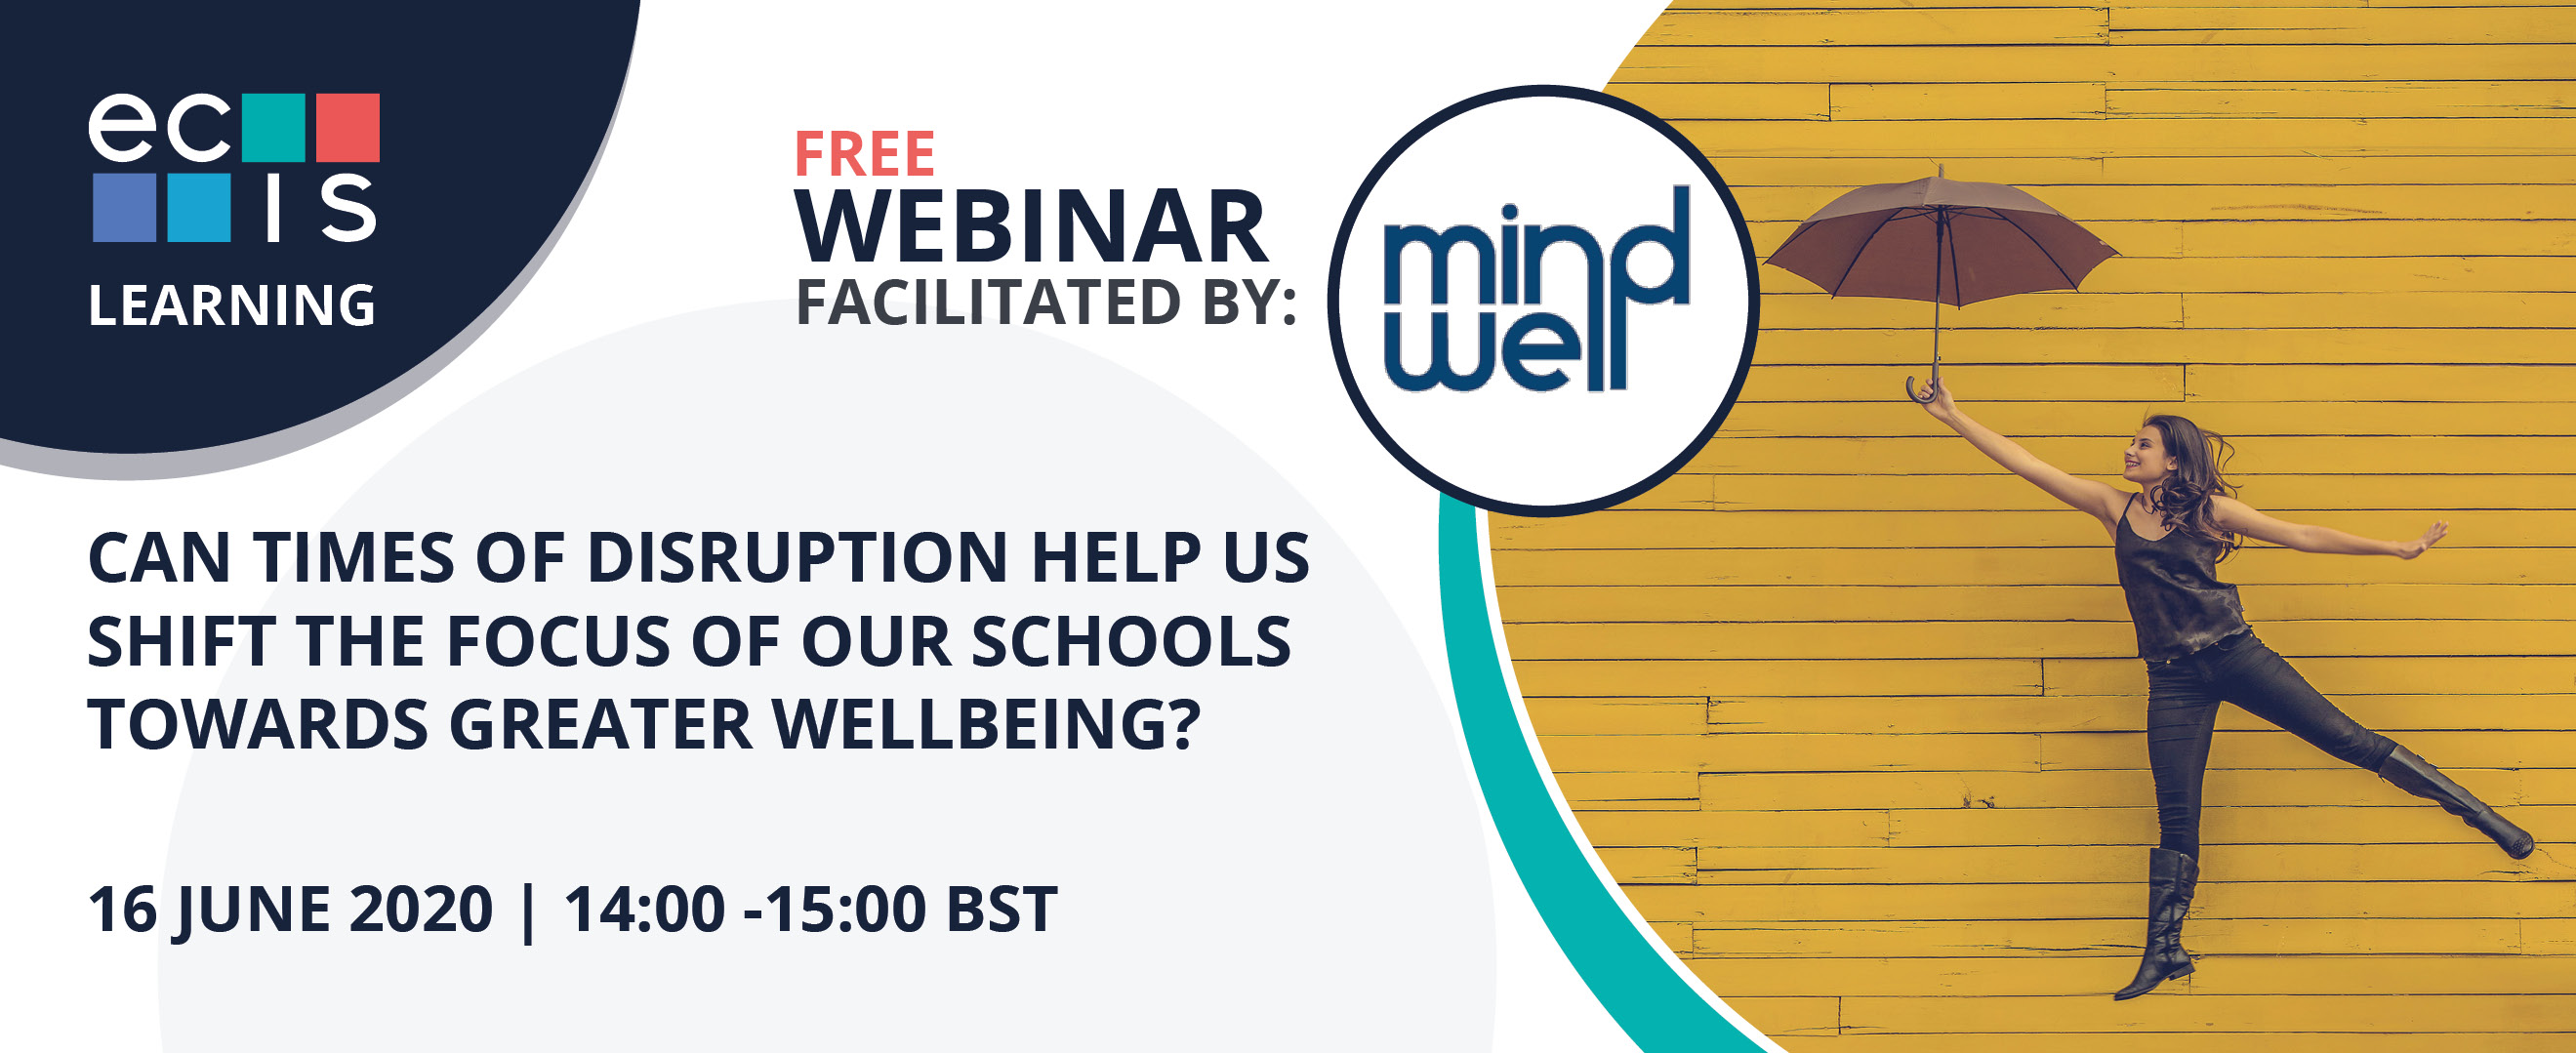 Webinar: Can times of disruption help us shift the focus of our schools towards greater wellbeing?